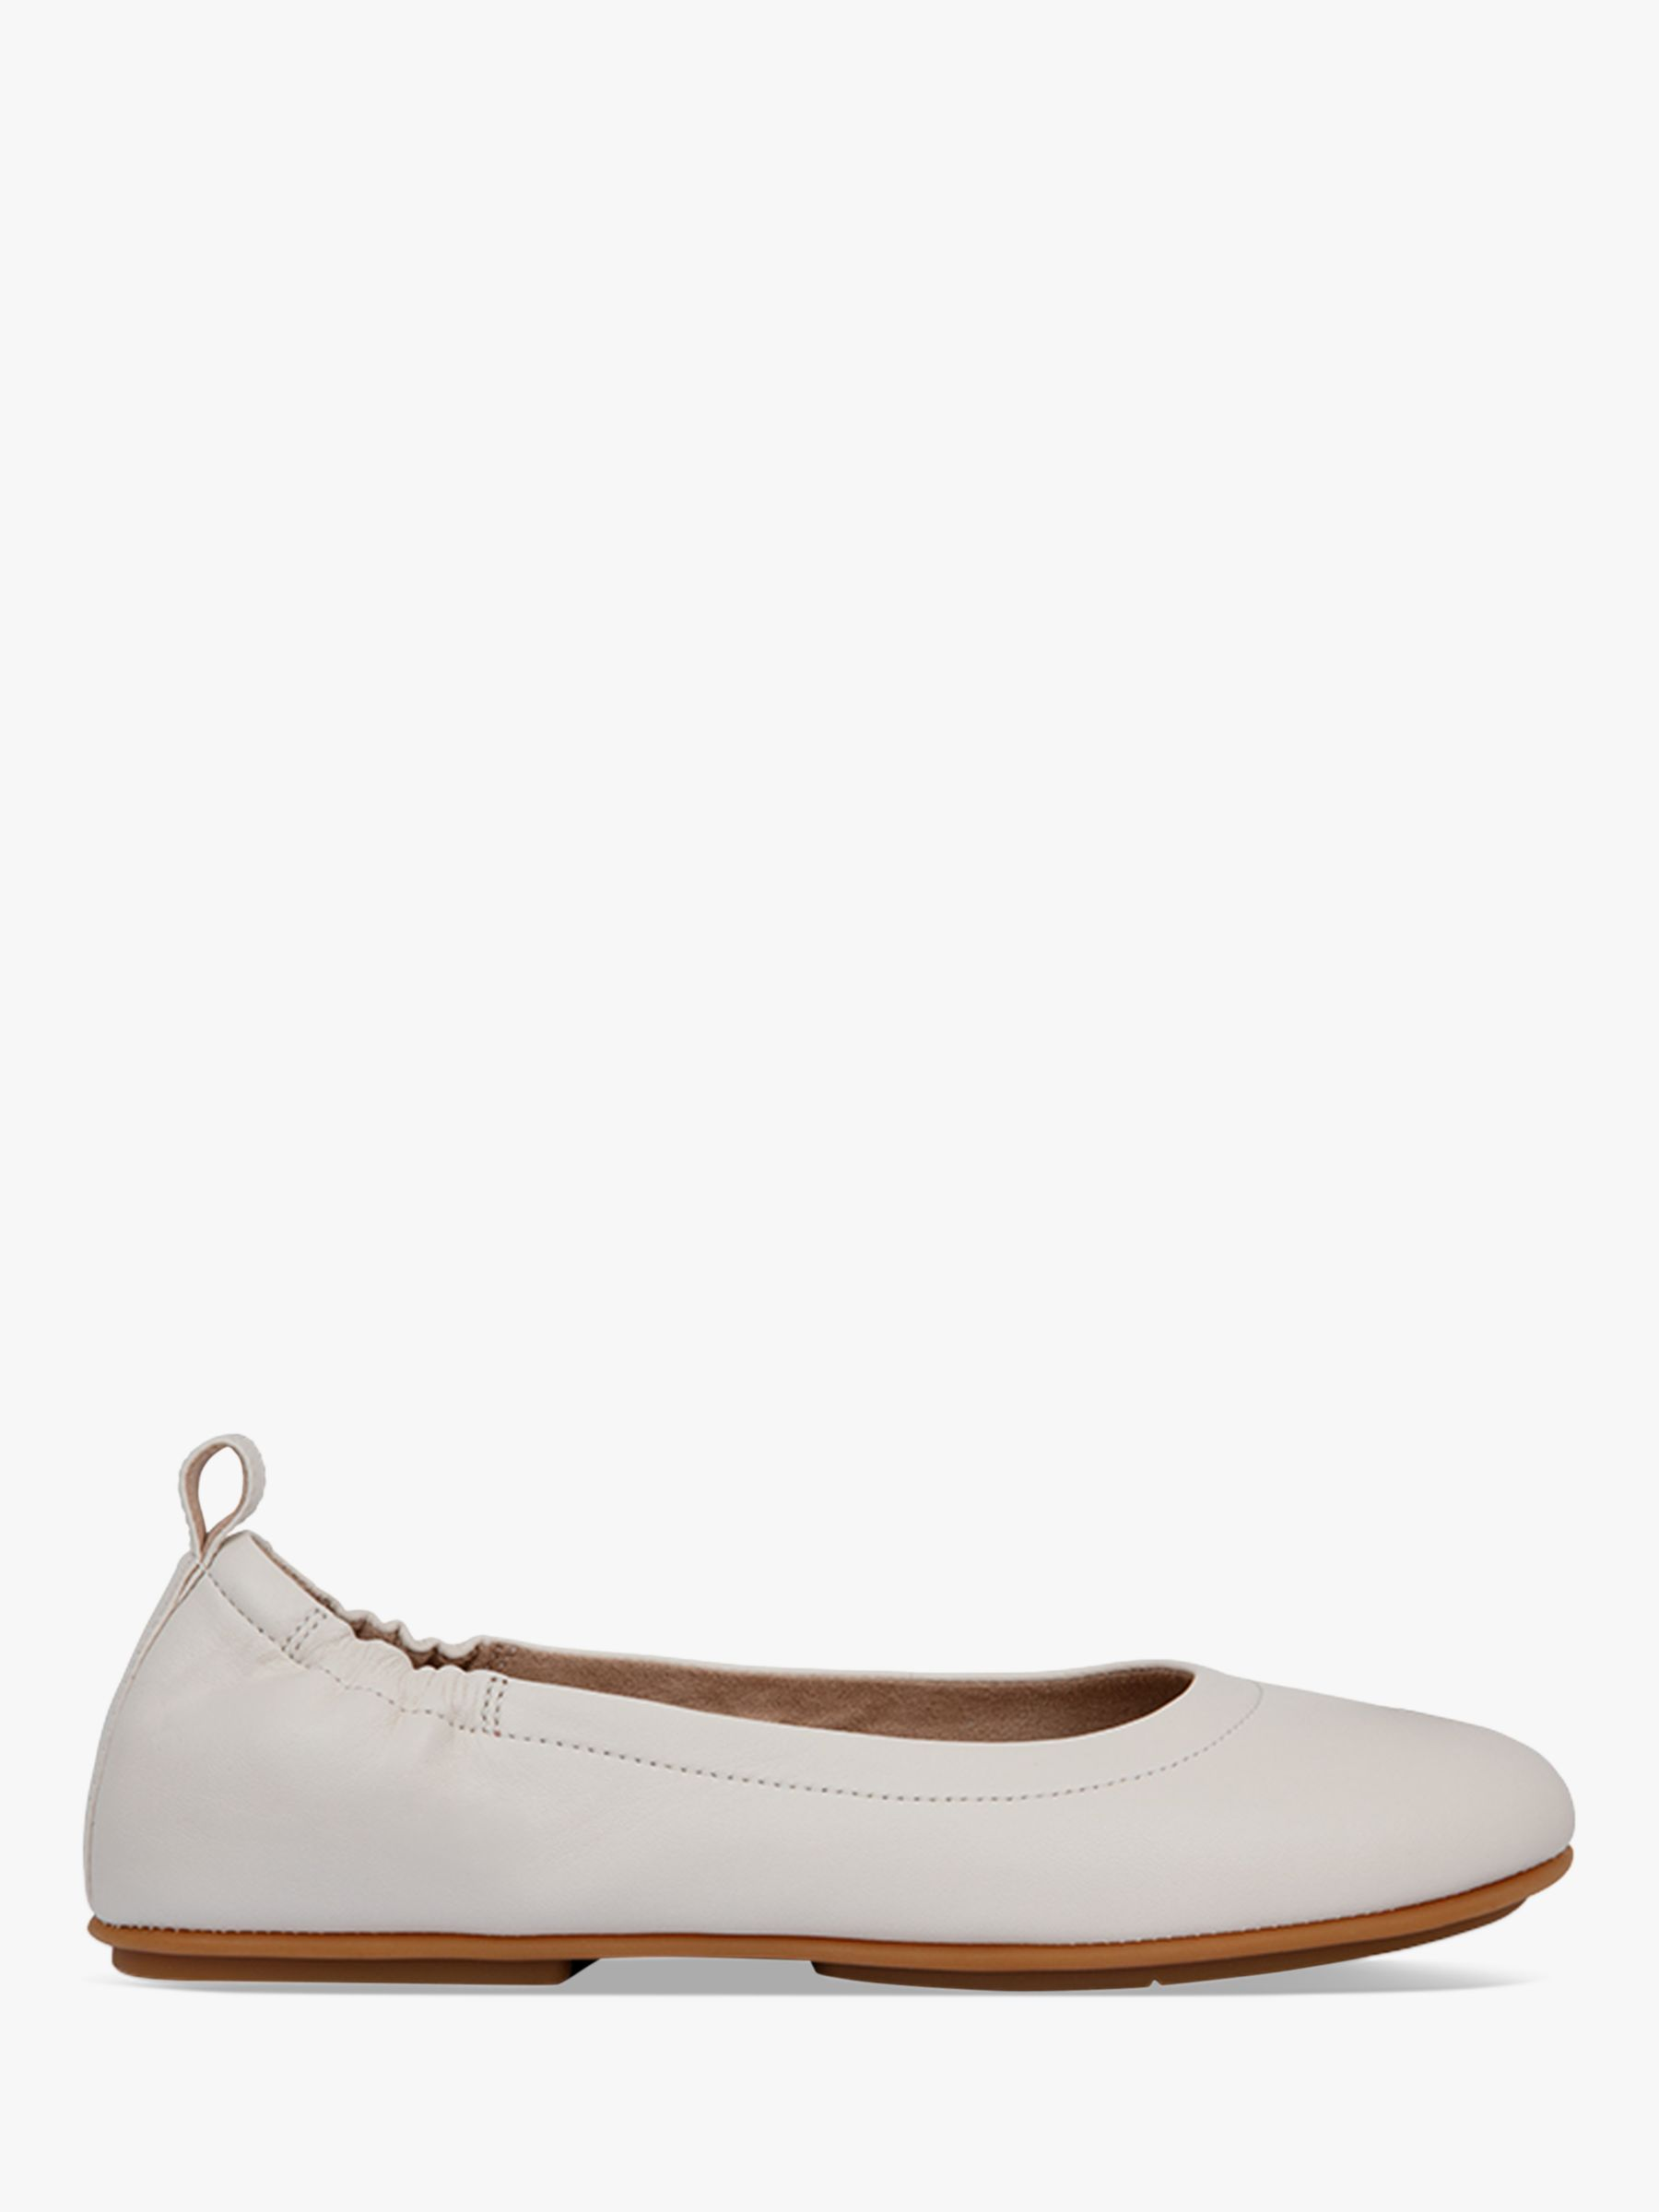 Fitflop Fitflop Allegro Flat Leather Pumps